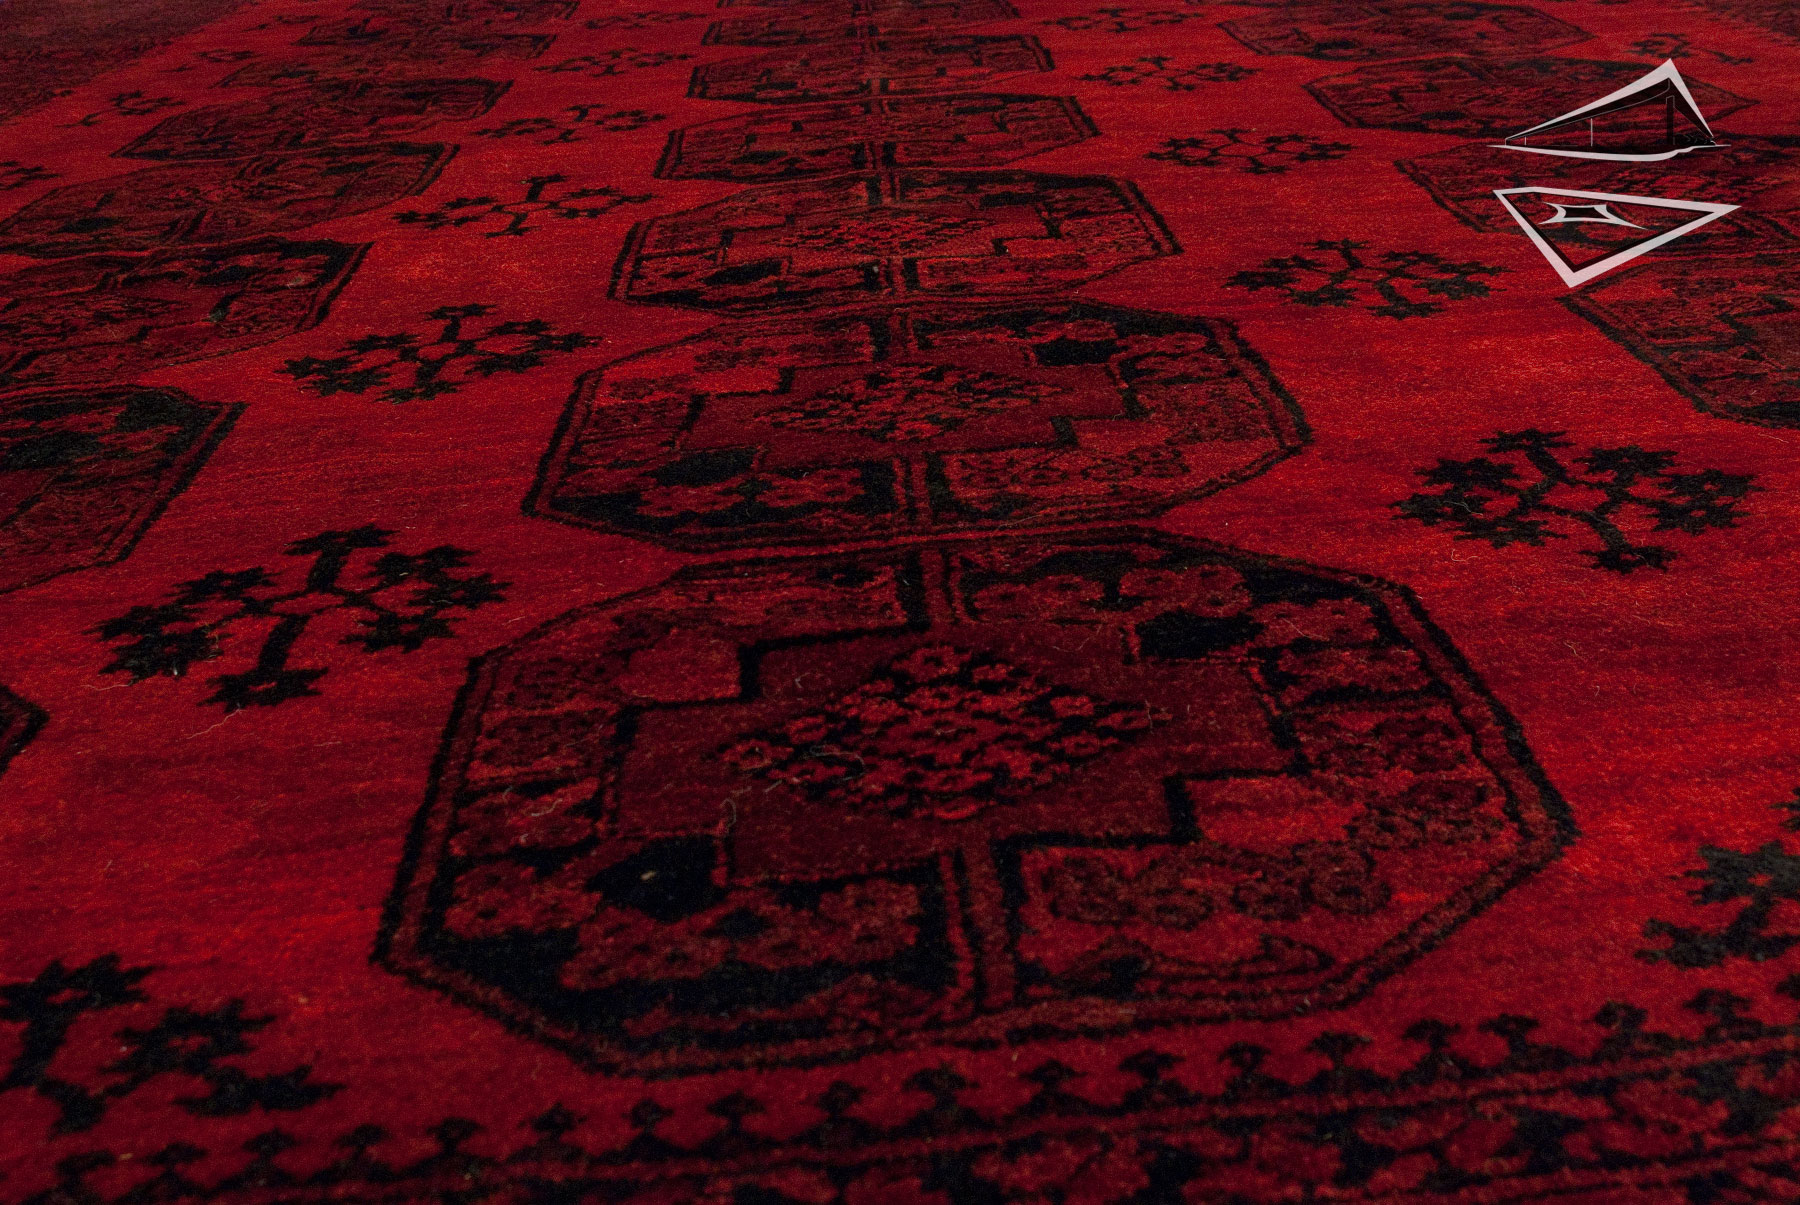 Red Plus Persian Rugs Equals Love additionally 34500 likewise Persian Rug besides Antique Gobelins Rugs And Carpets also Persian Rug. on antique persian carpets